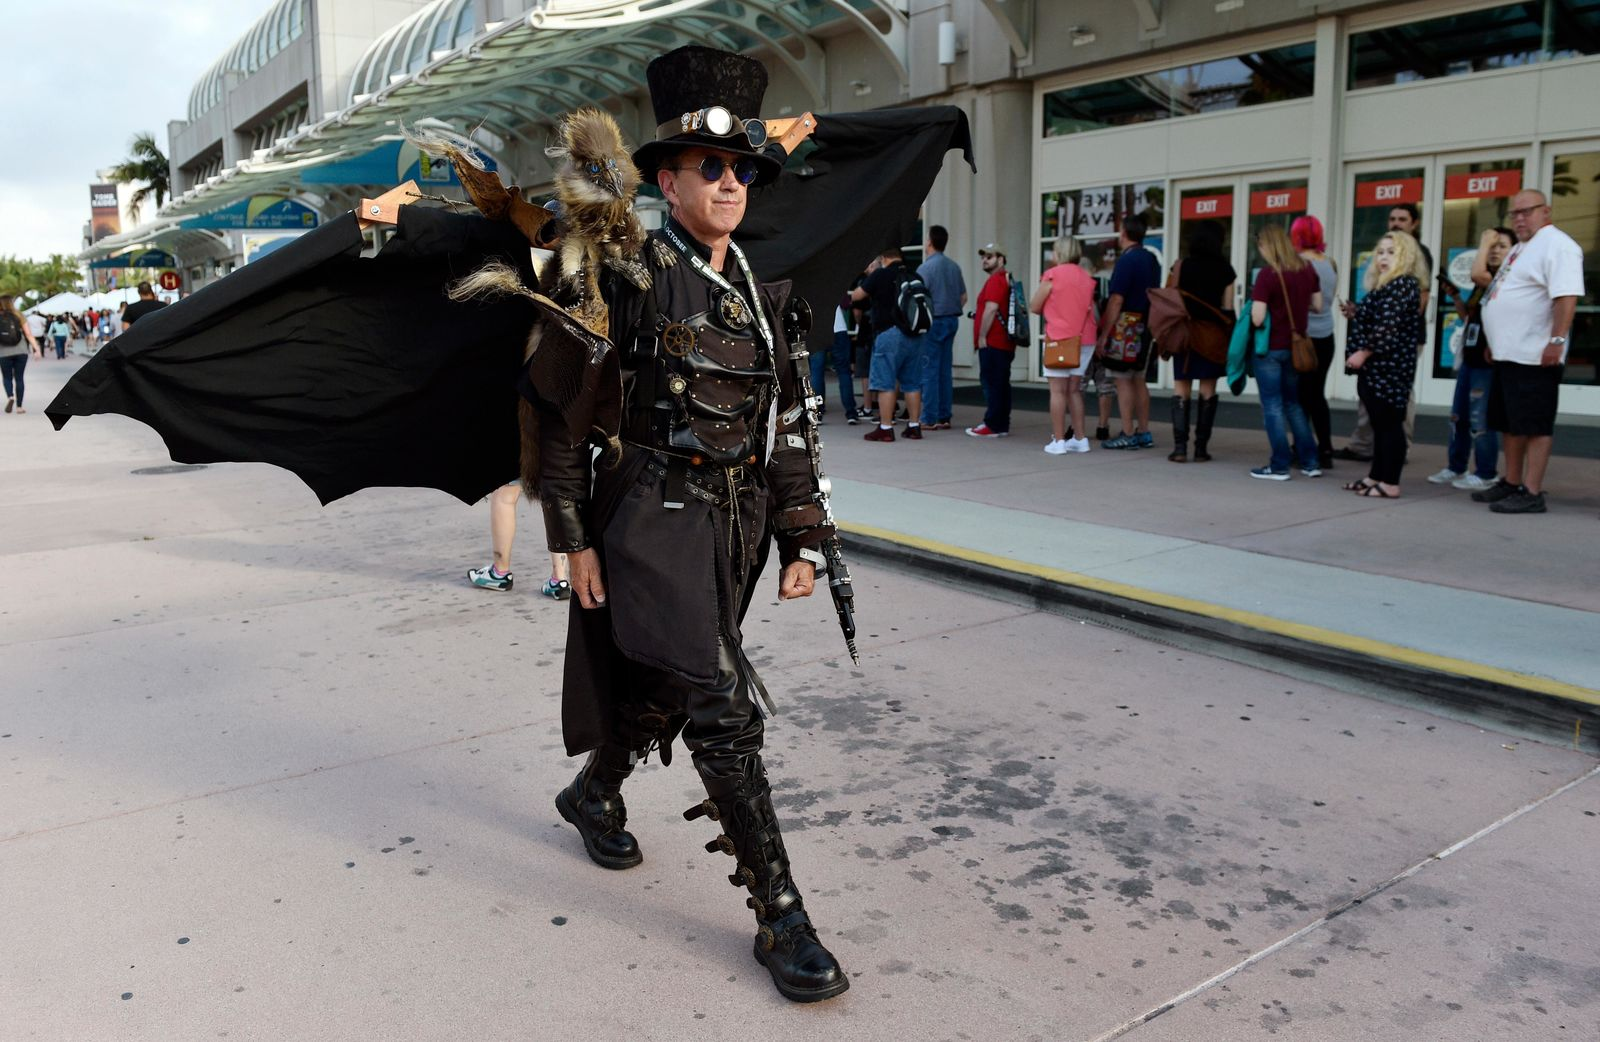 Dean LeCrone, of San Diego, wears his Dr. Artemus Peepers costume as he walks past attendees to Preview Night of the 2018 Comic-Con International at the San Diego Convention Center, Wednesday, July 18, 2018, in San Diego. LeCrone said that this year marks his 28th Comic-Con. (Photo by Chris Pizzello/Invision/AP)